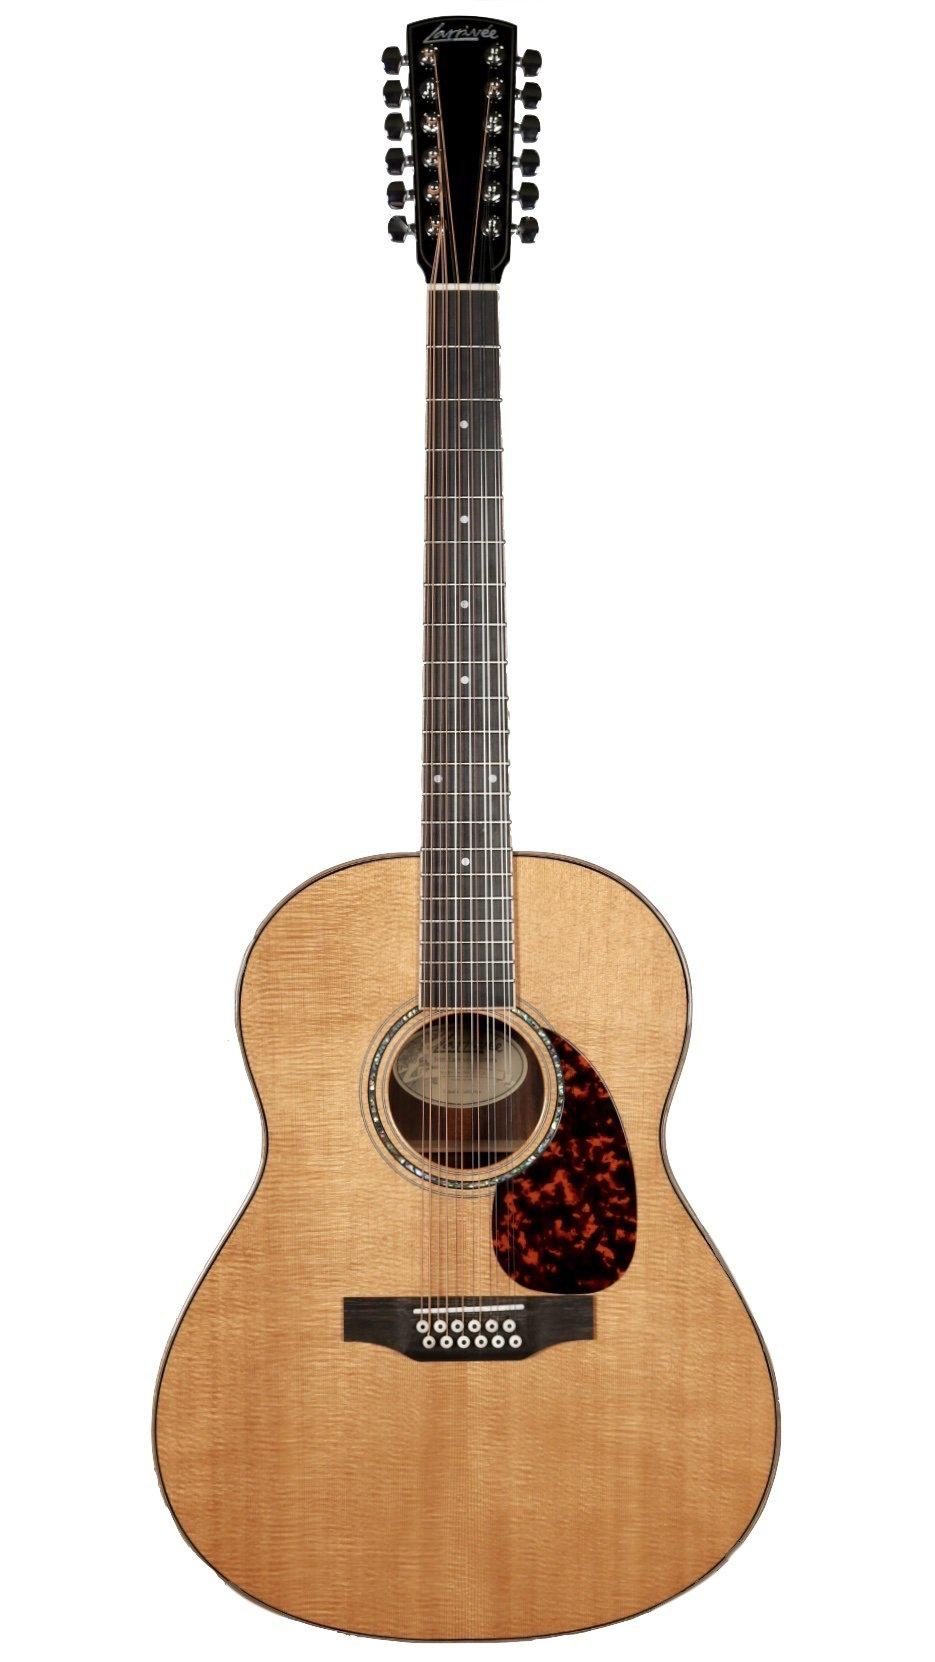 Larrivee L-09 12 String Indian Rosewood (Pre-Owned) - Larrivee Guitars - Heartbreaker Guitars